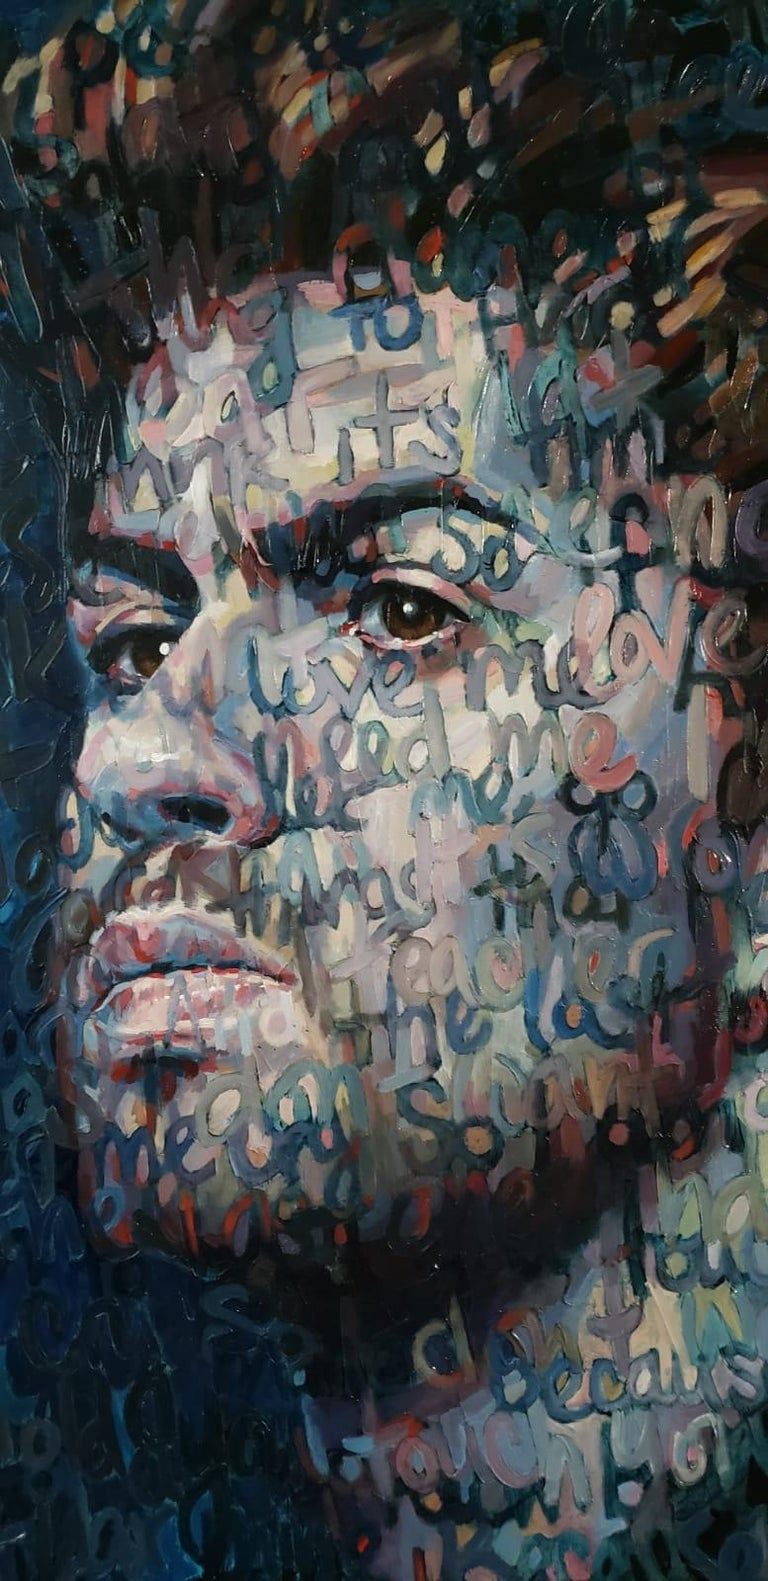 Large Oil Painting Titled: George Michael  - Black Figurative Painting by Christina Major